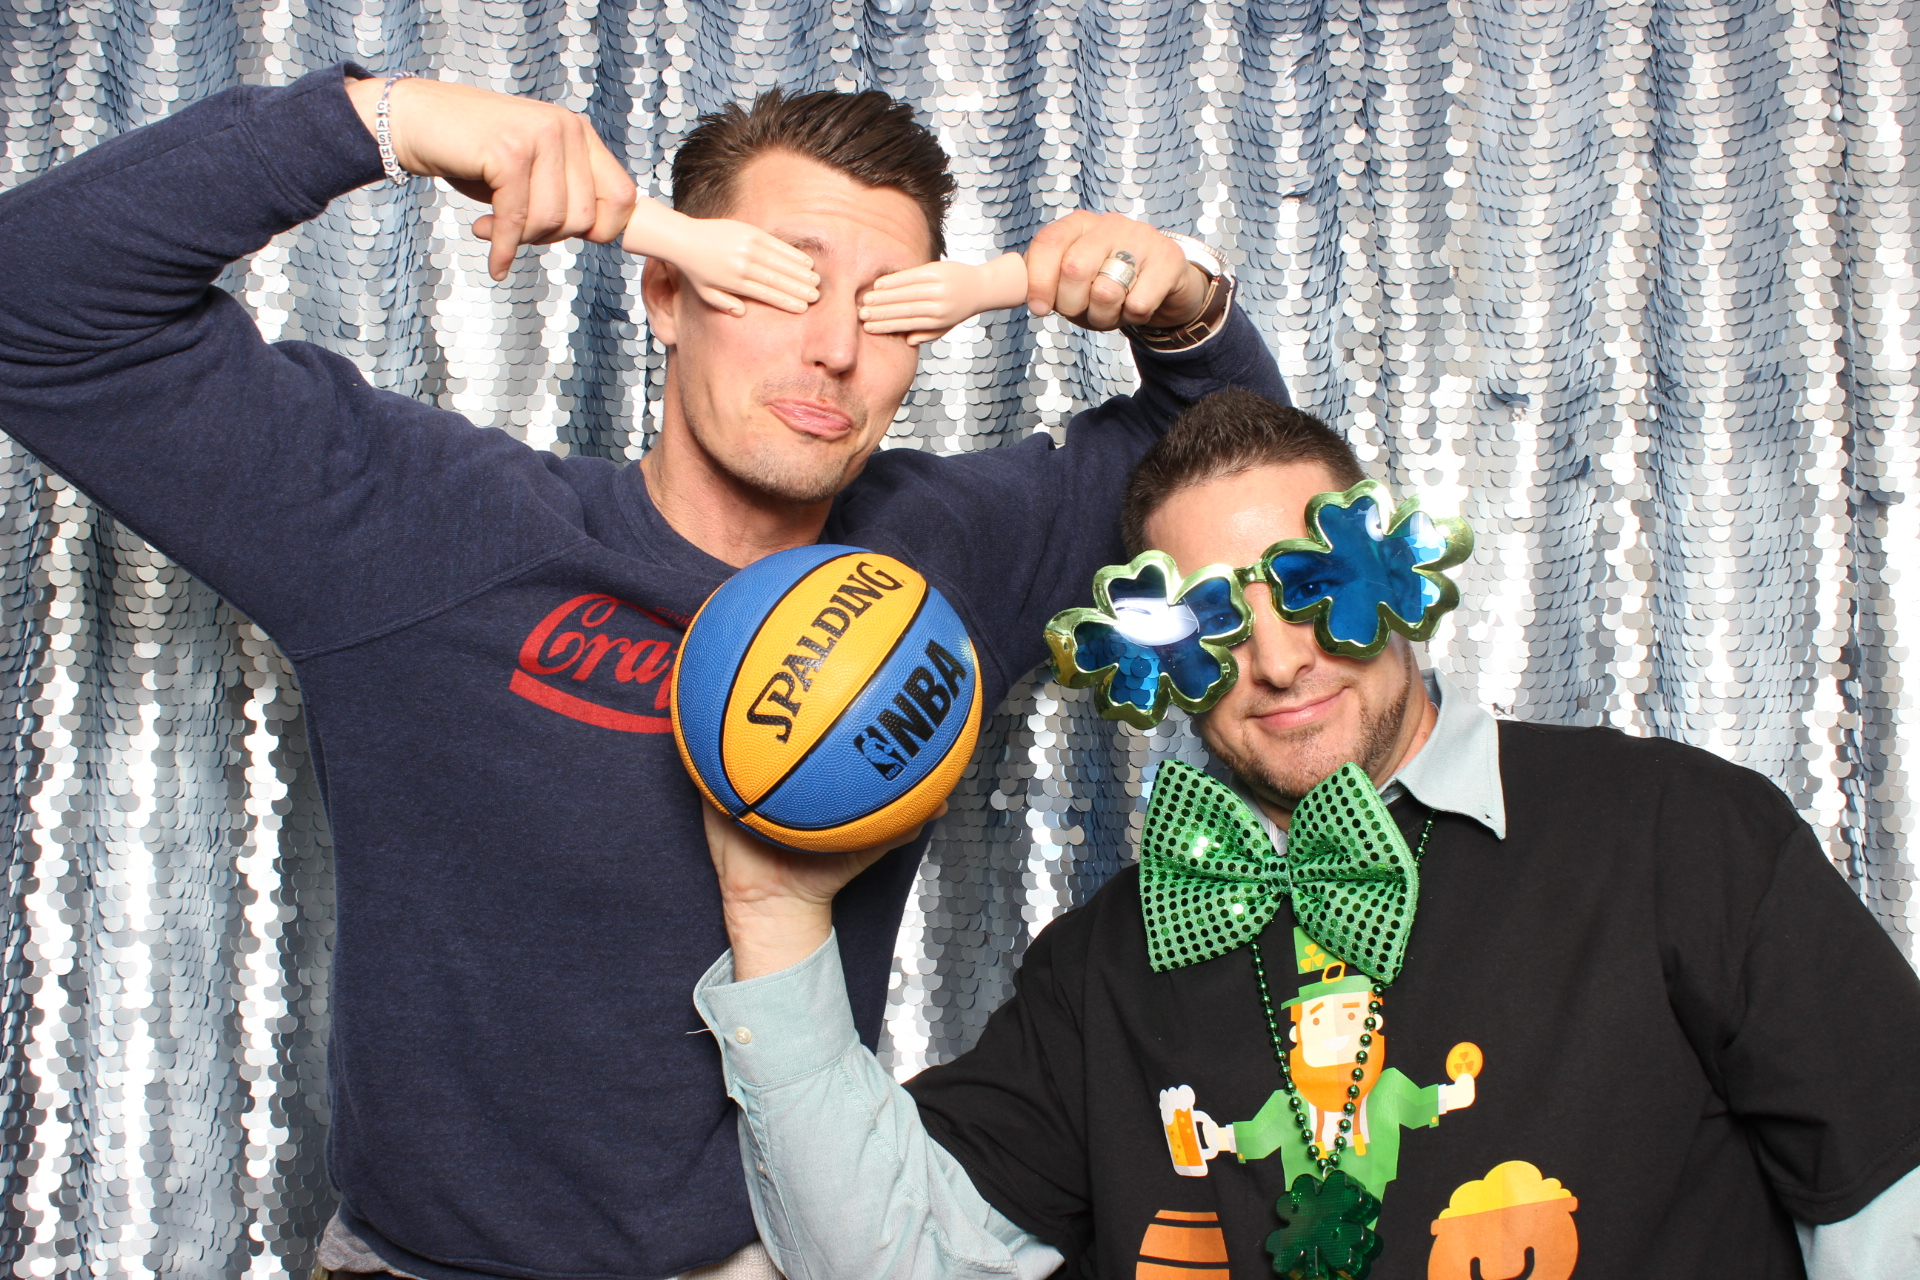 March Madness celebration with Swatch Photobooth